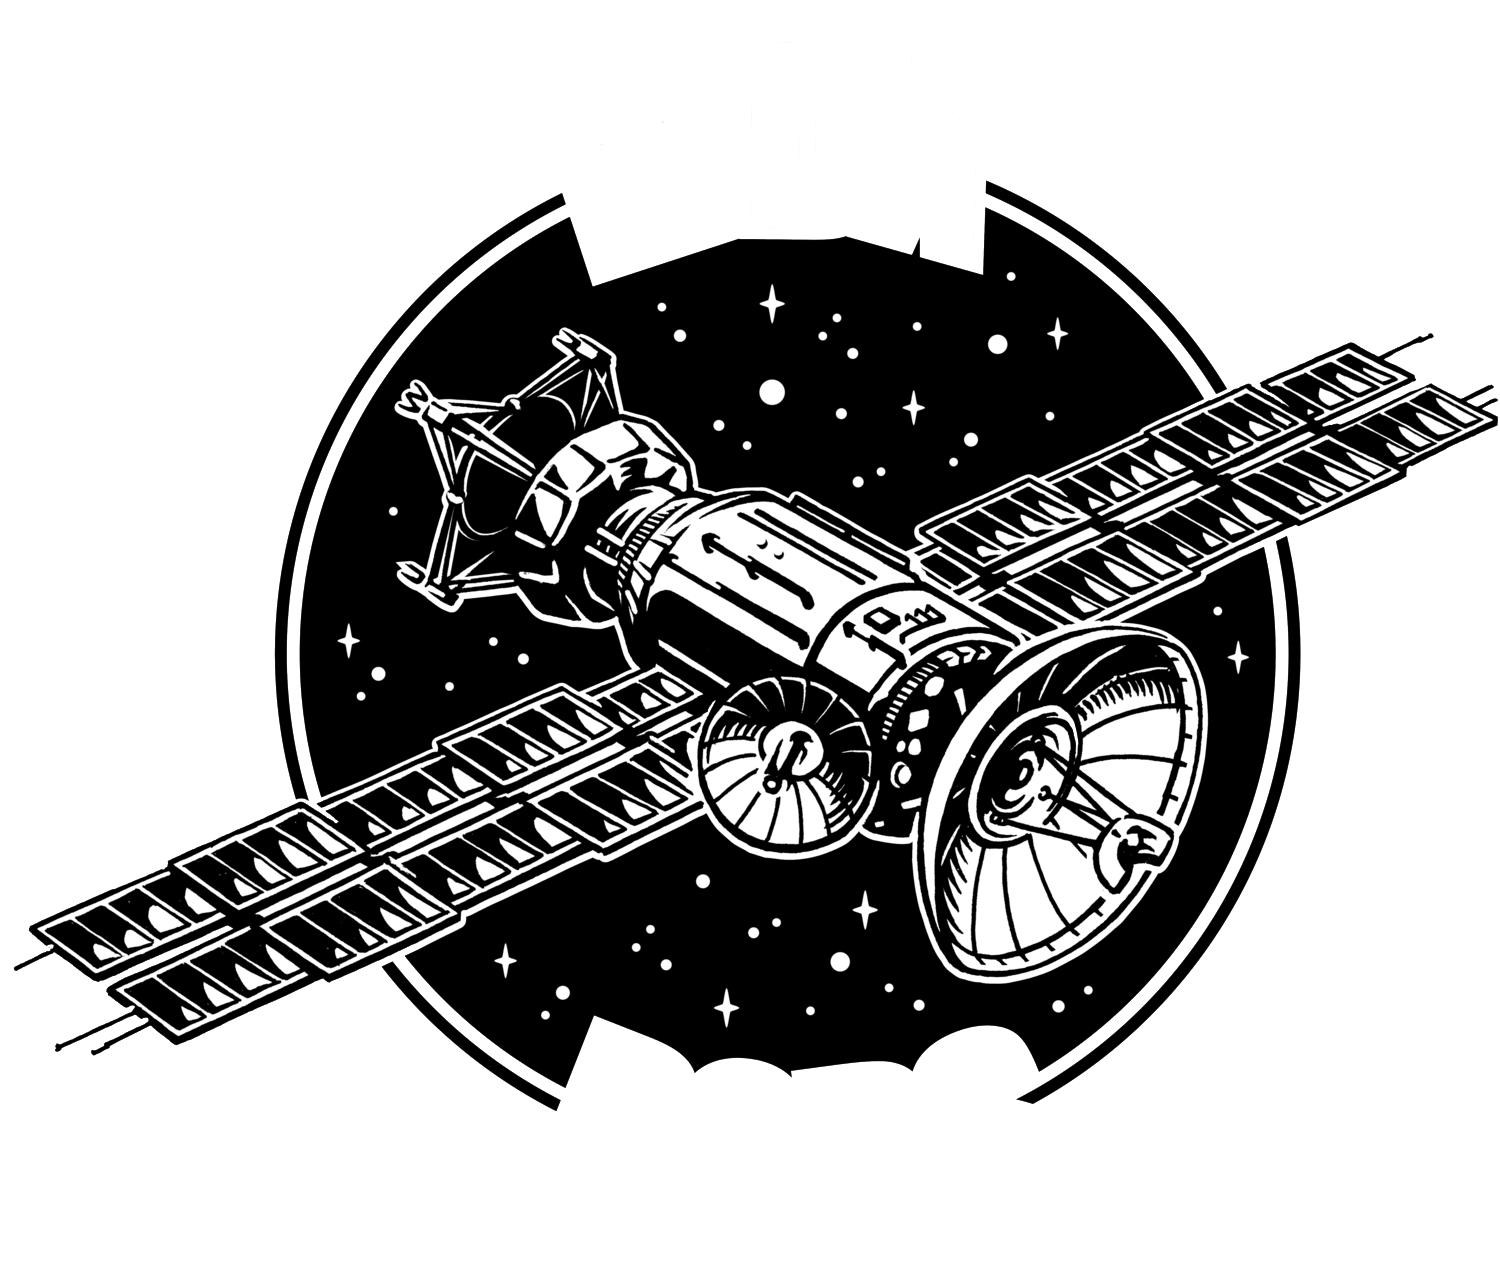 MDXpods